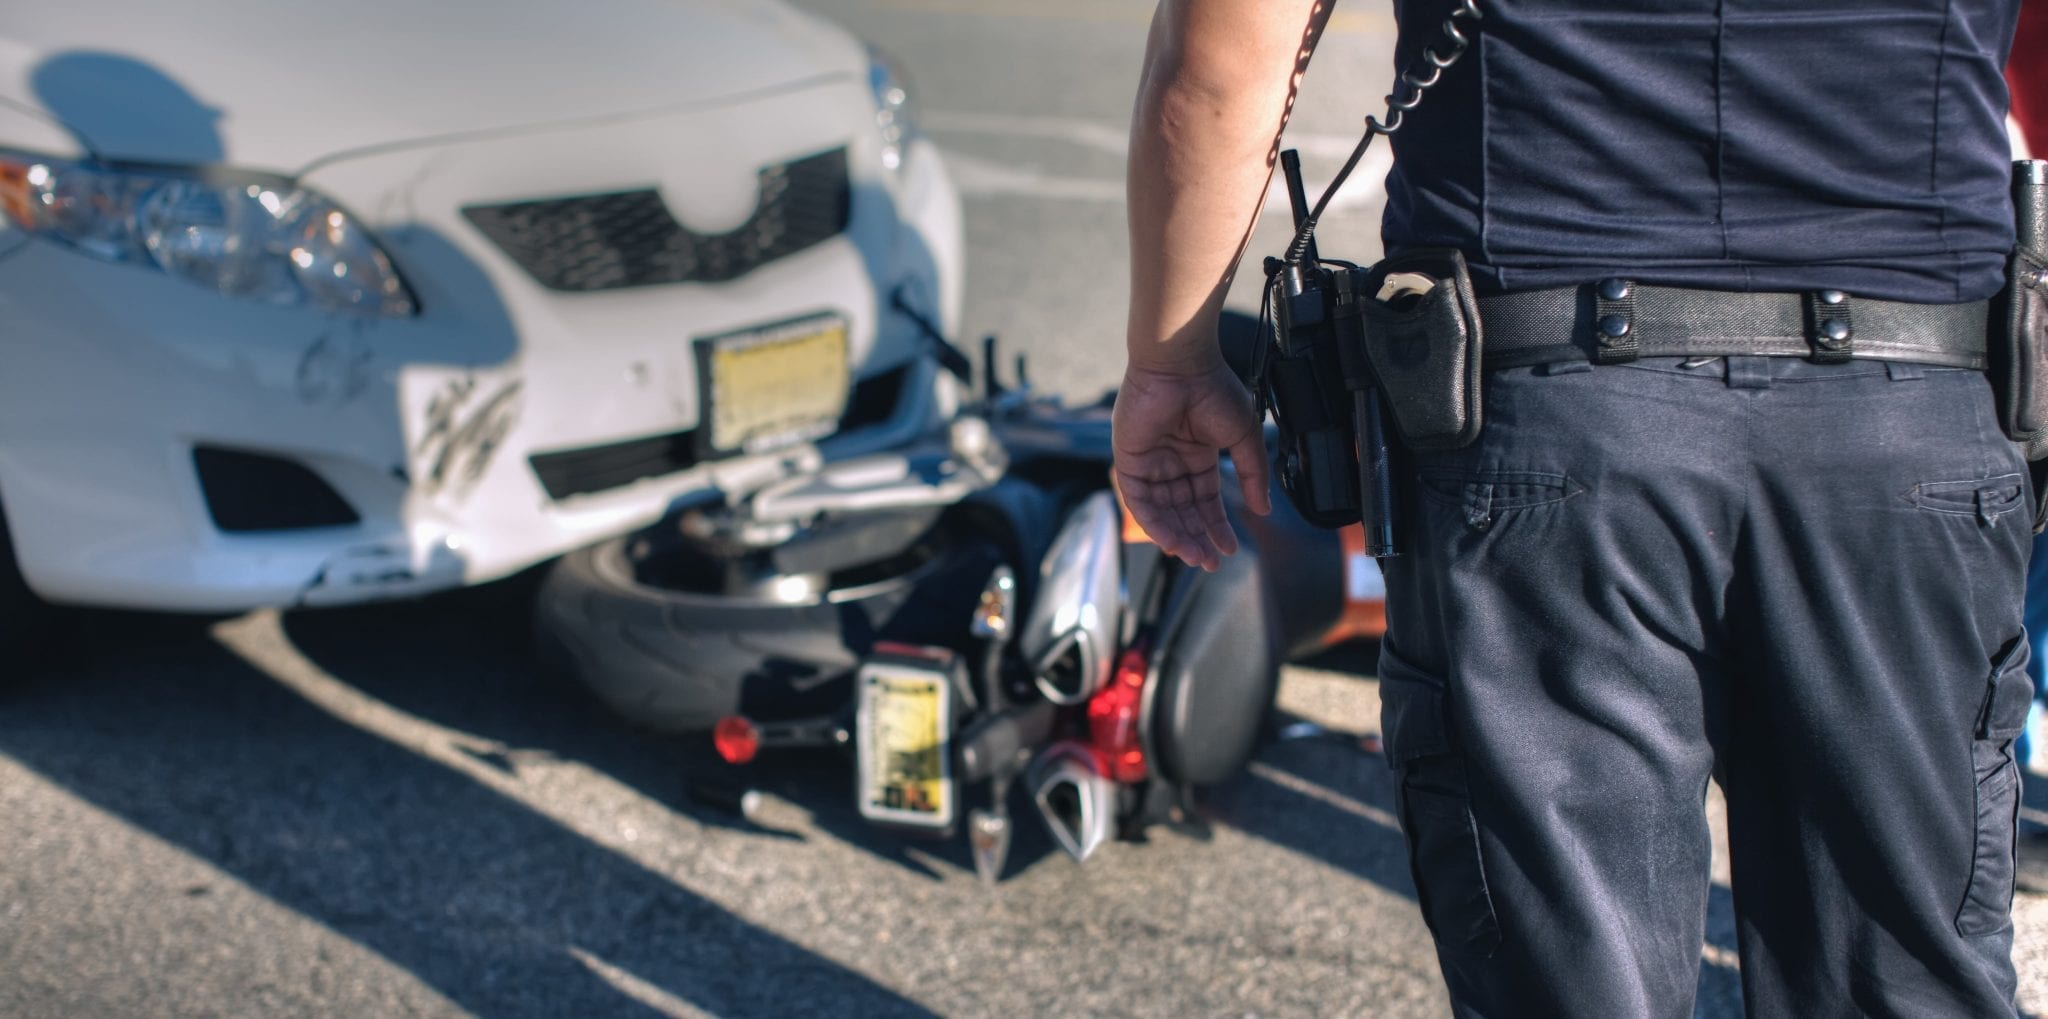 Motorcycle Accident With White Car Stock Photo